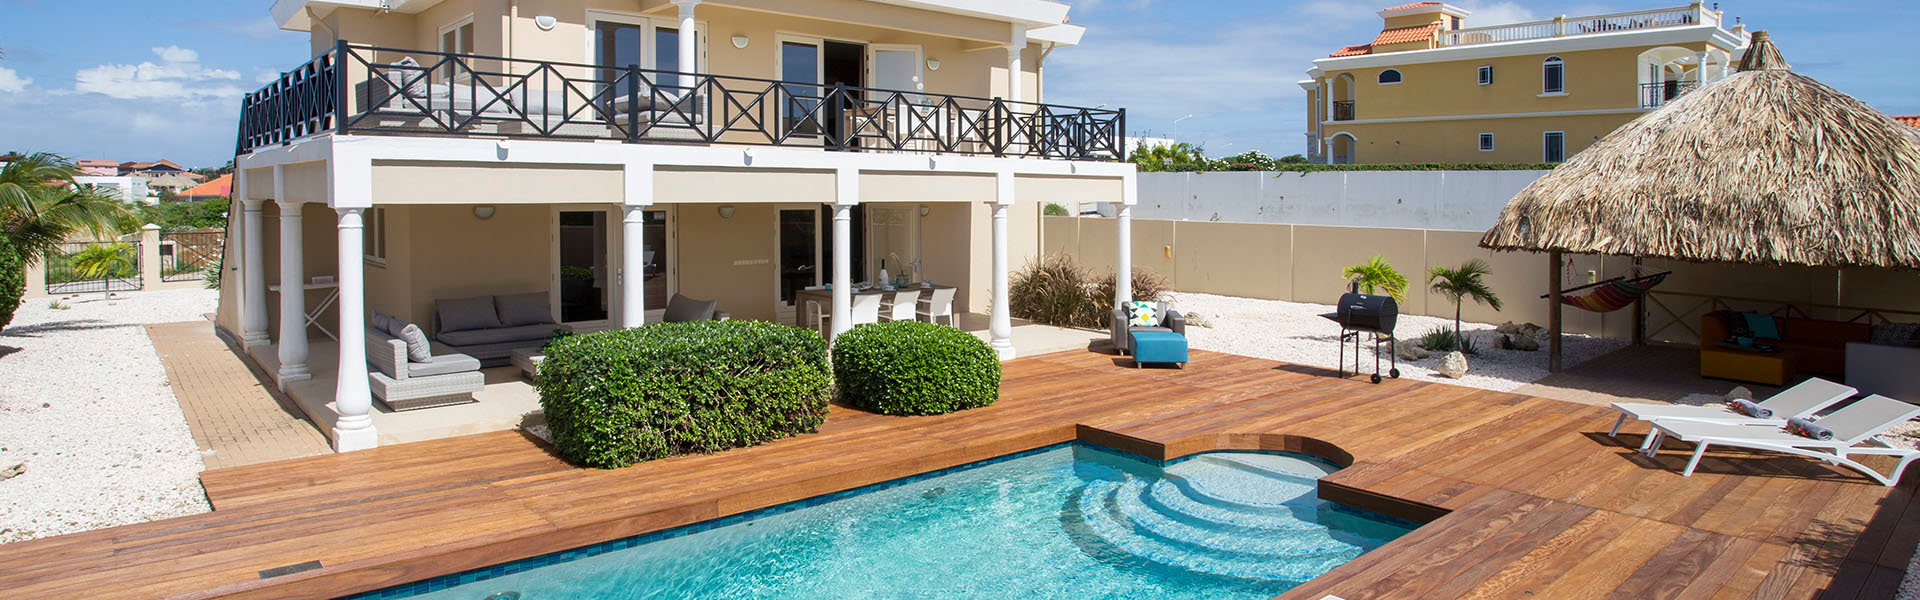 holiday homes on Curacao with private pool